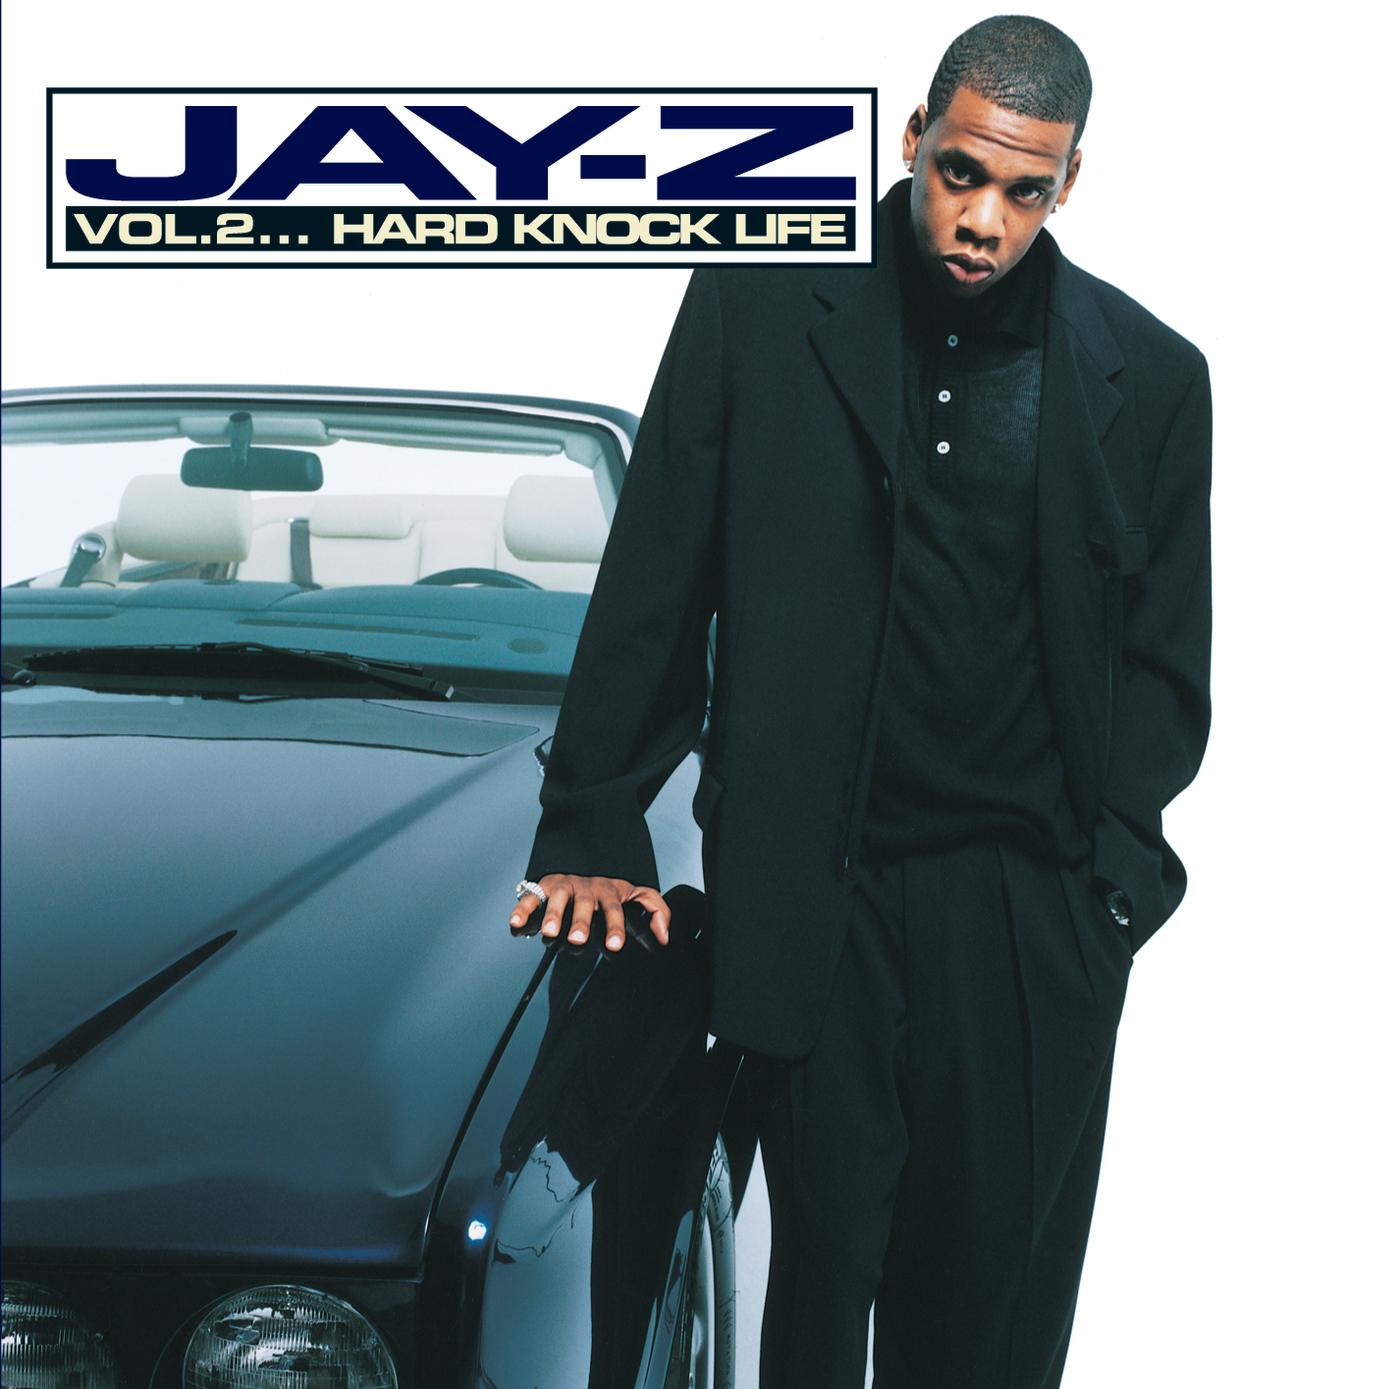 Stream free music from albums by jay z iheartradio malvernweather Image collections